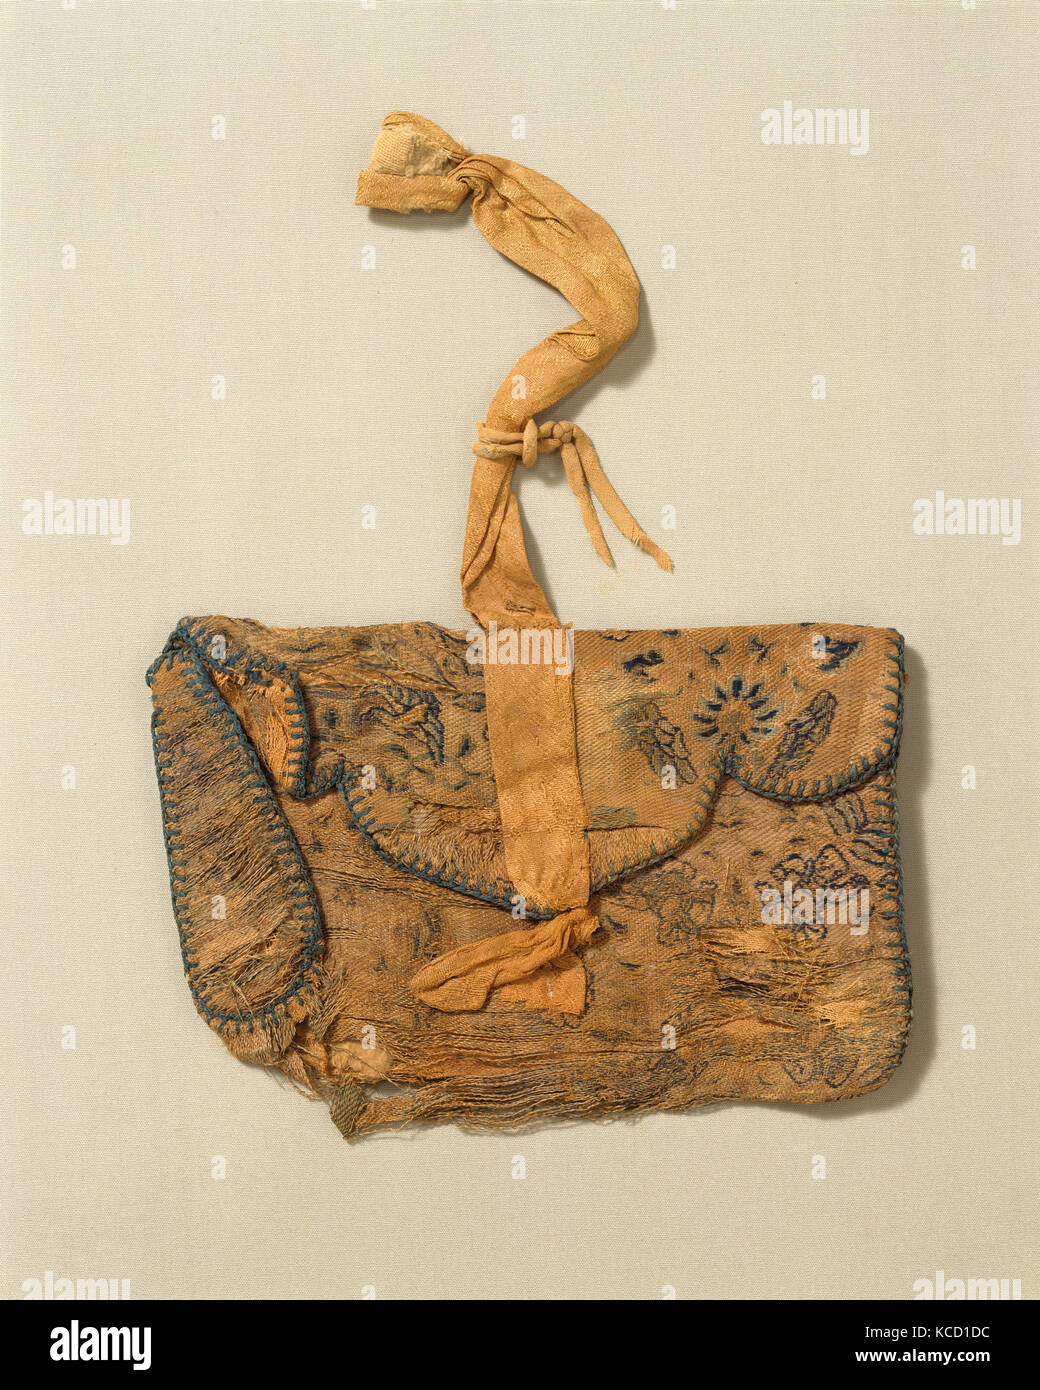 Purse, Tang dynasty (618–907), 8th–9th century, China, Silk, 5 5/8 x 5 3/8 x 1 in. (14.3 x 13.7 x 2.5 cm), Textiles - Stock Image